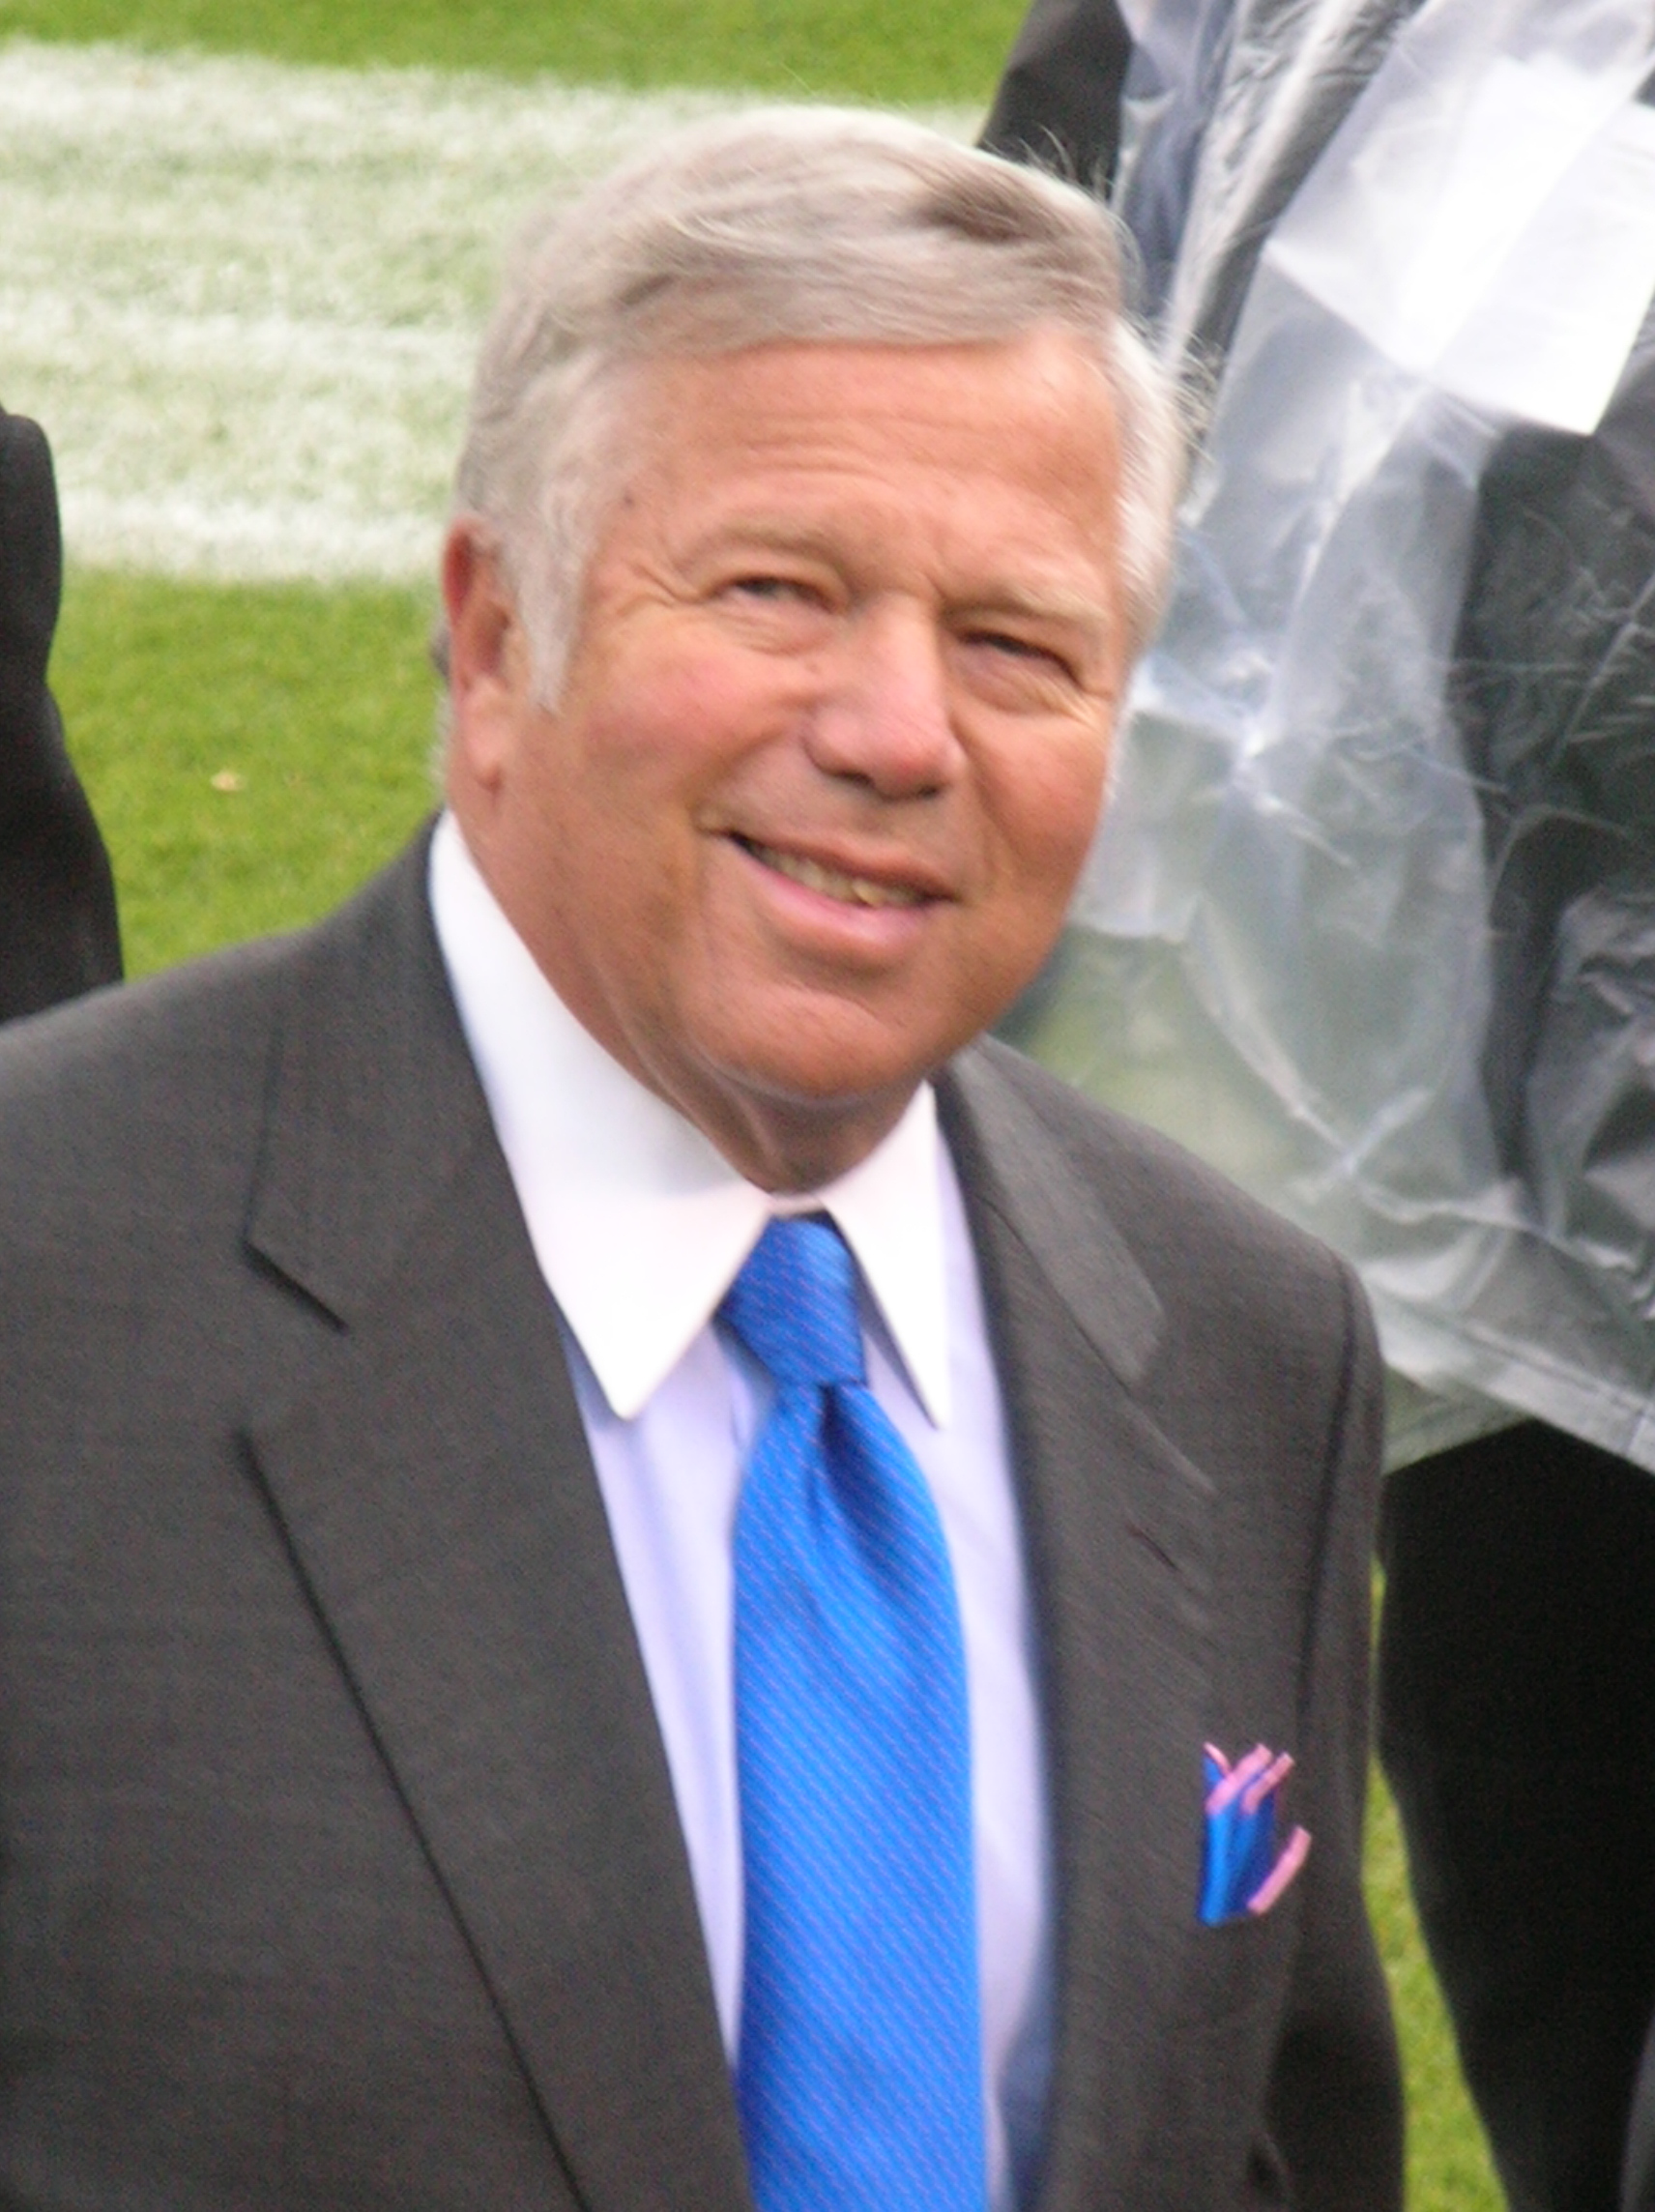 robert k kraft Check out what robert k kraft will be attending at bloomberg breakaway 2017.